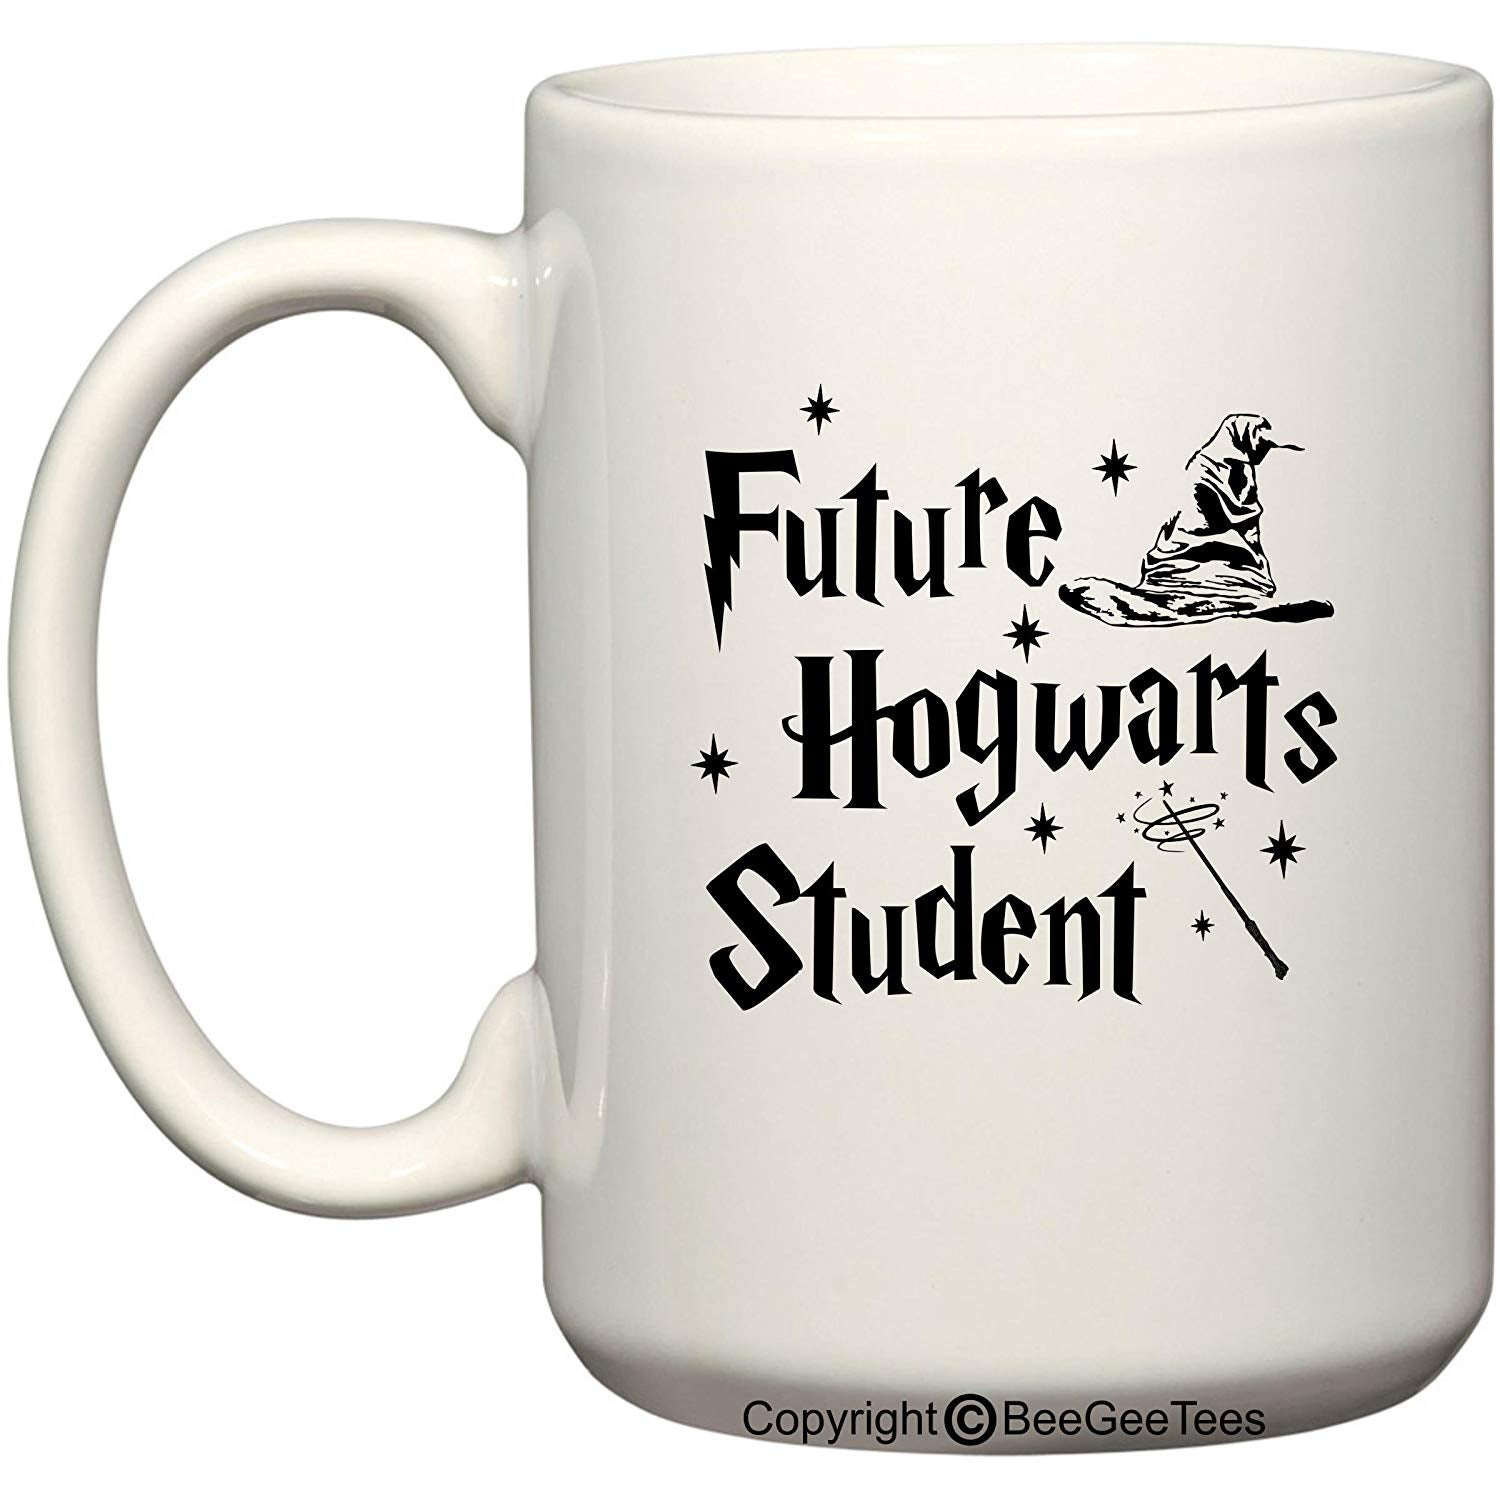 Future Hogwarts Student Funny Harry Potter Inspired Coffee Mug or Tea Cup Wizards by BeeGeeTees